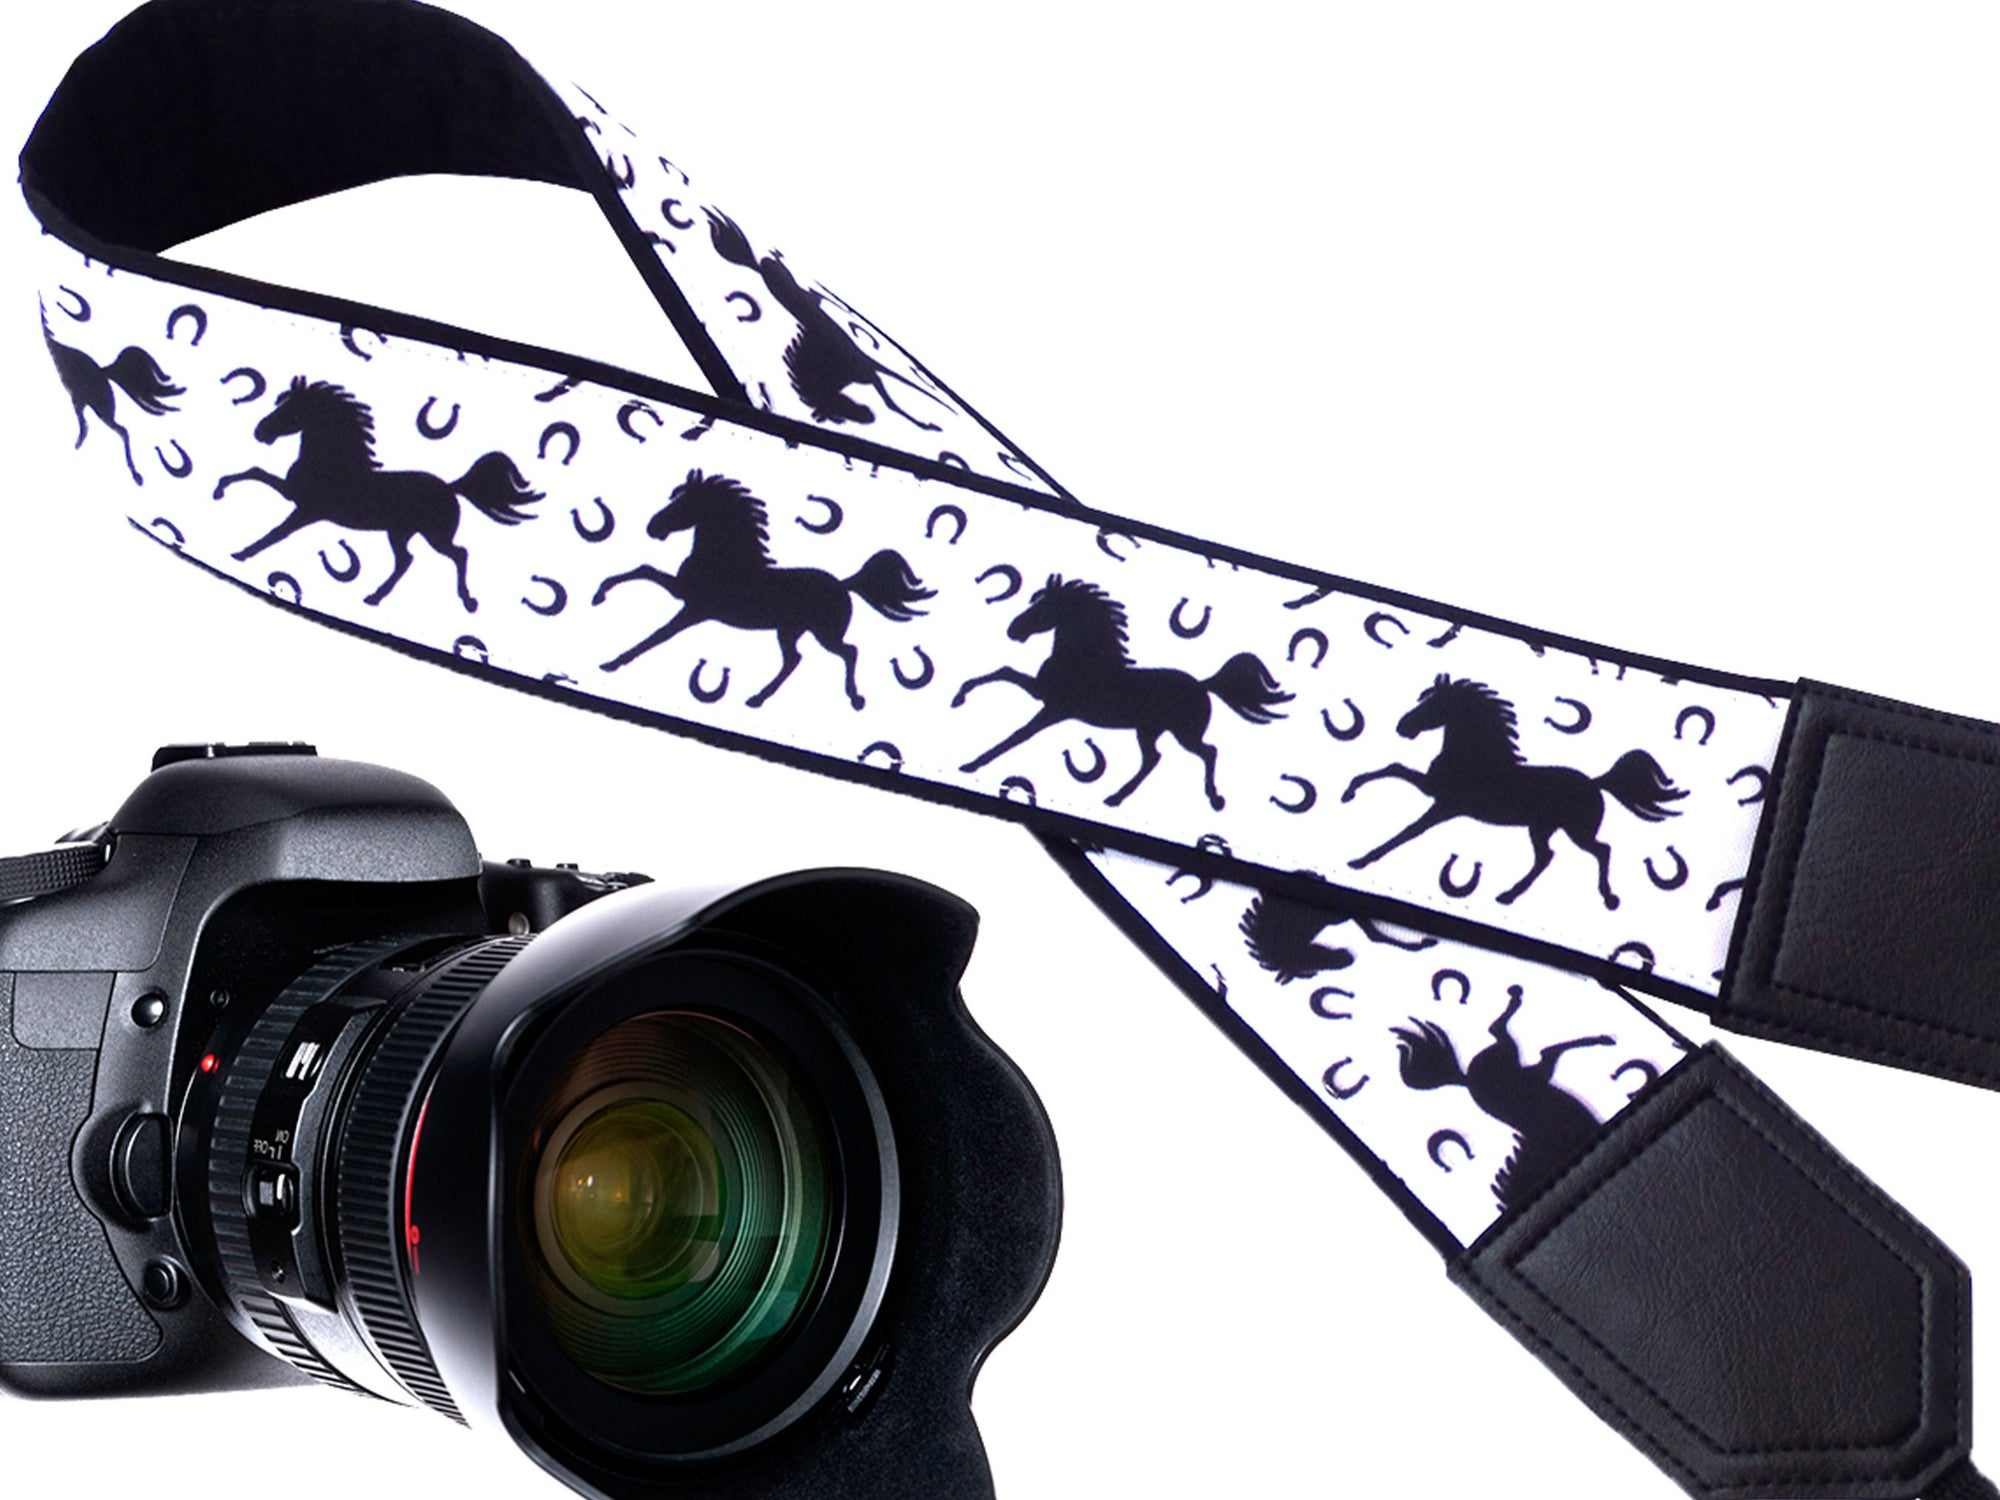 Black Horses Camera Strap, Black And White Camera Strap. DSLR mirrorless Camera Strap, Camera Accessories for travelers and photographers.